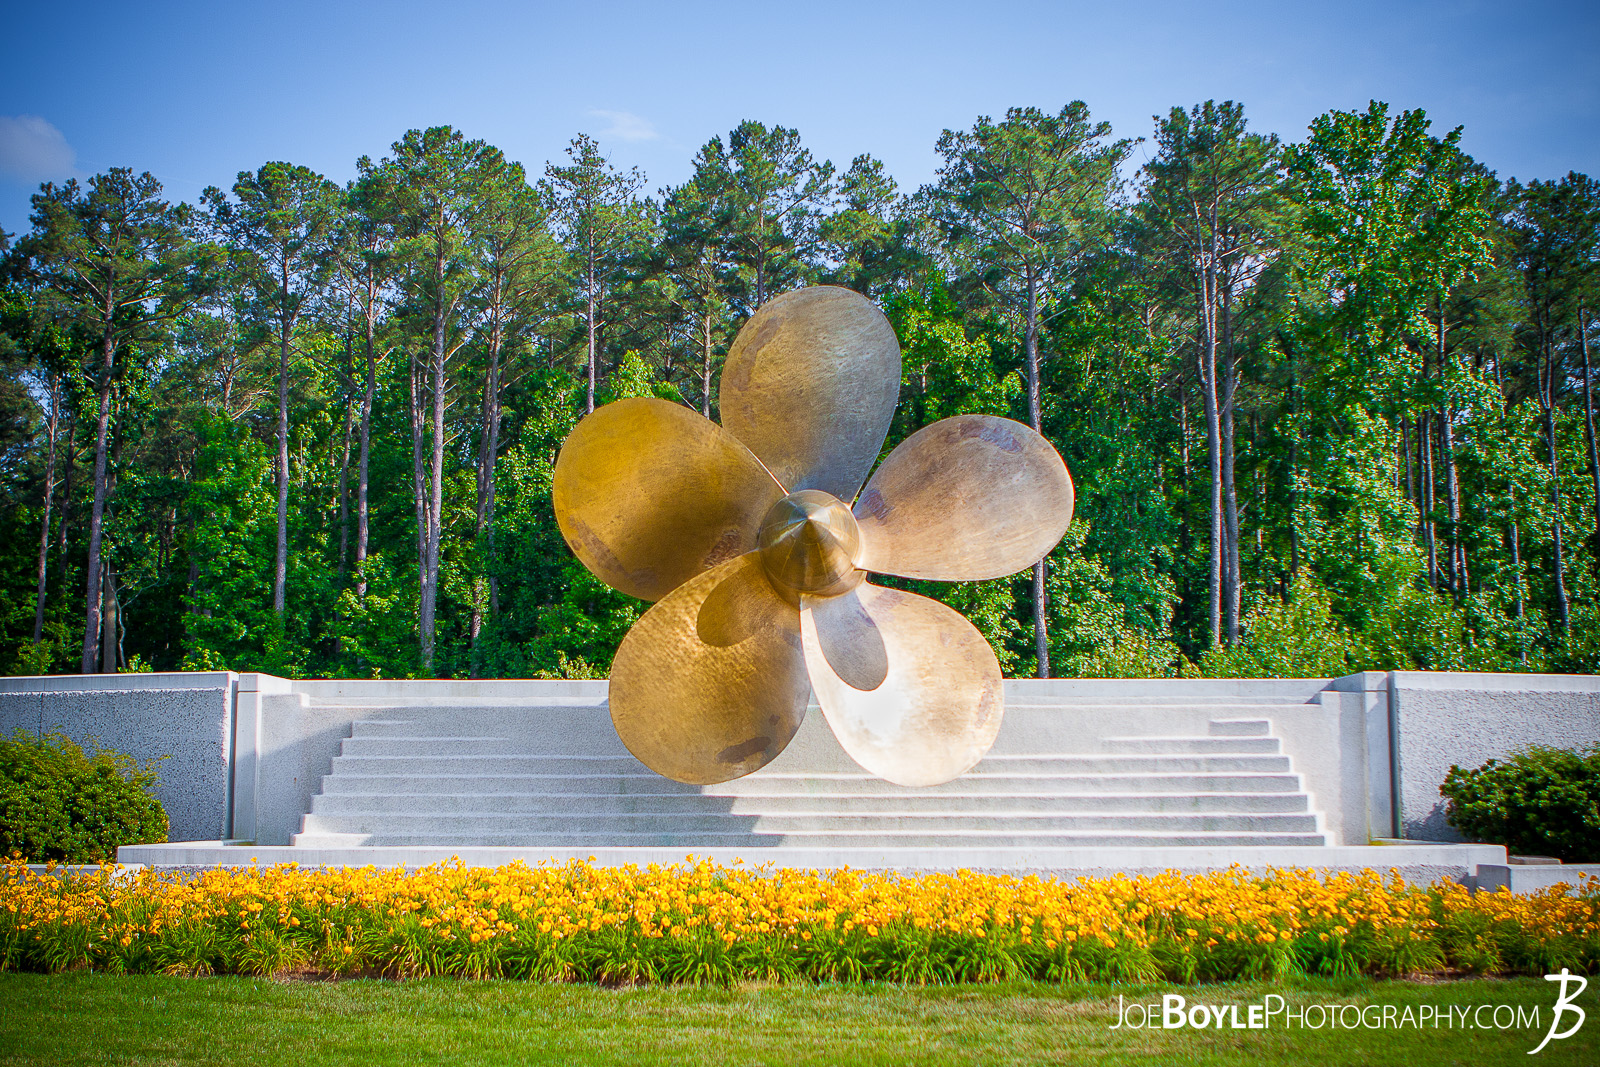 This propeller on display at the Mariner's Museum and Park is from the SS United States which was a record-setting trans Atlantic passenger liner built by Newport News Shipbuilding and Drydock Company in the late 1940s. Read more about this propeller and the Mariner's Museum.